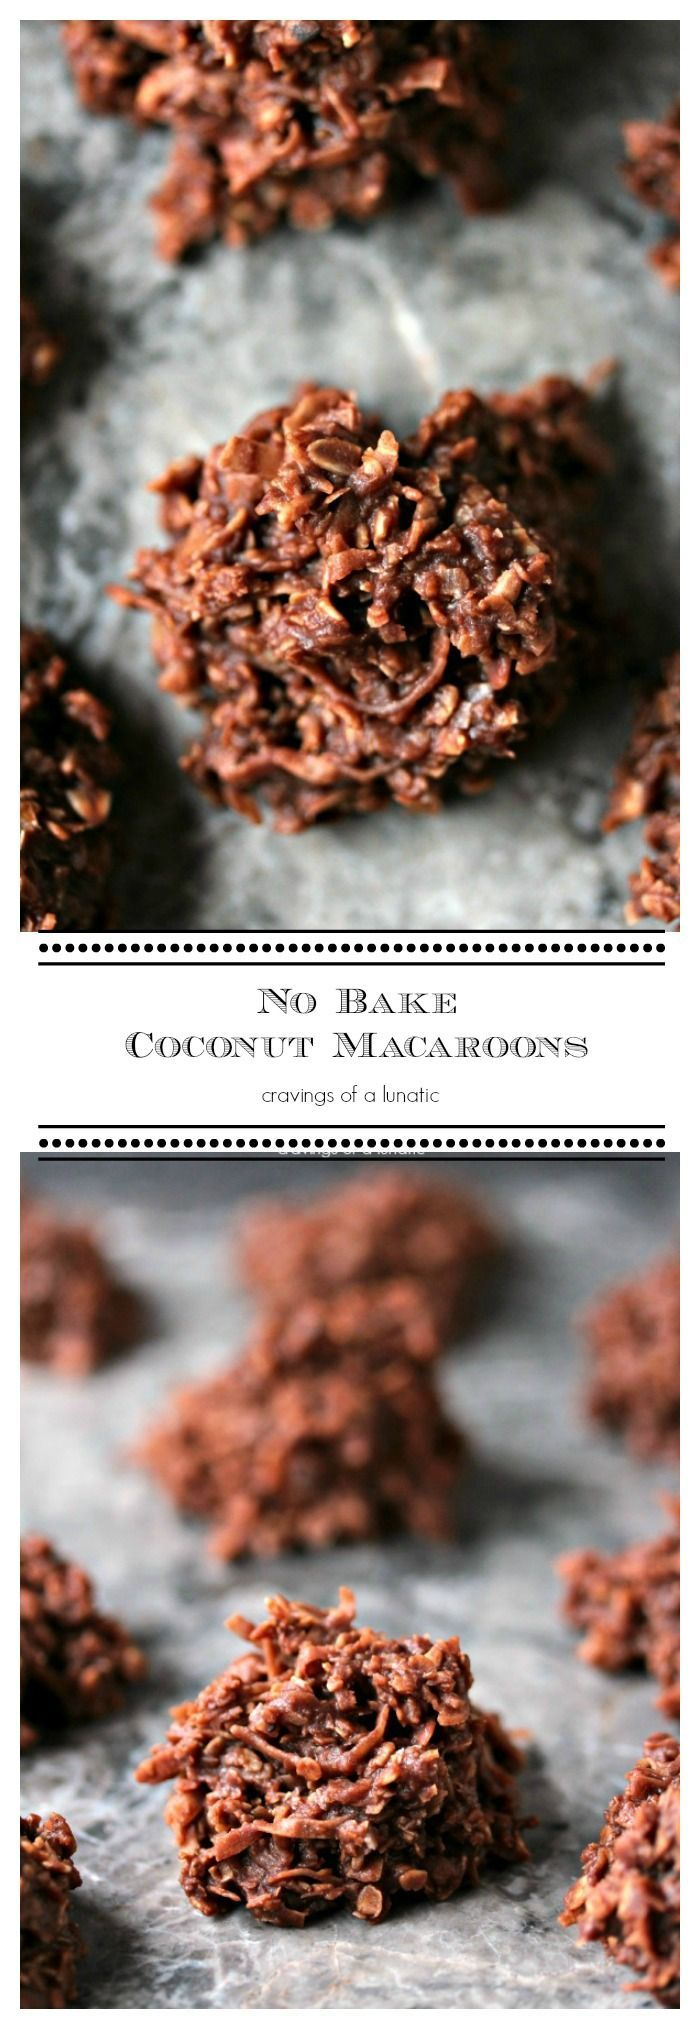 No Bake Coconut Macaroons | Simple, quick No Bake Cookies that will impress your...